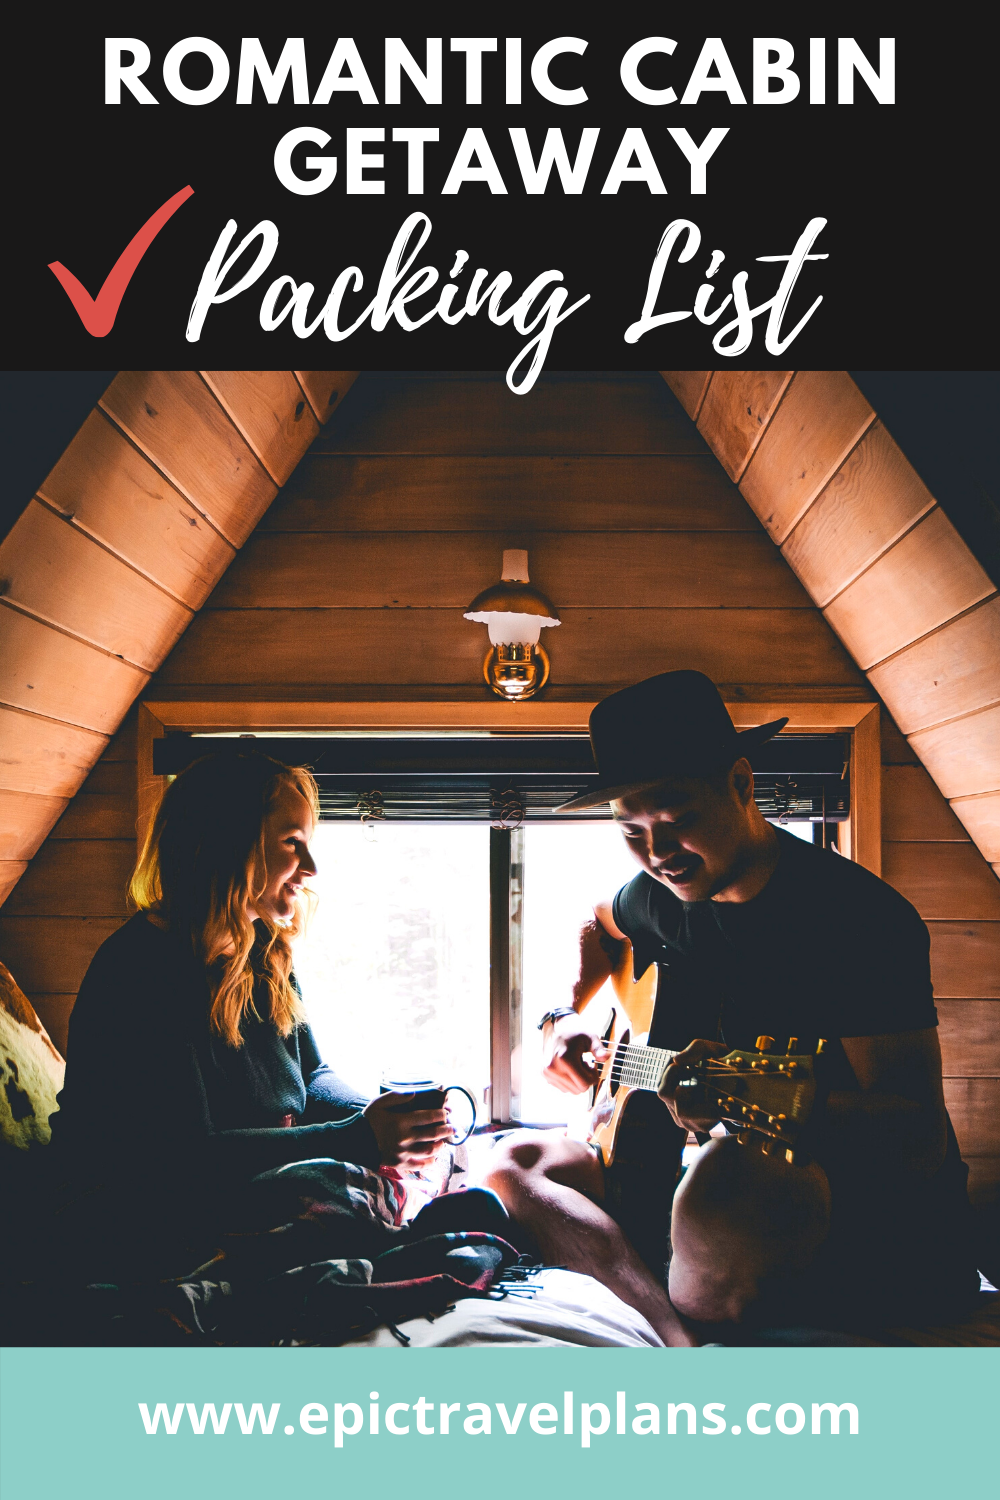 Romantic cabin getaway packing list, how to make a cabin getaway romantic